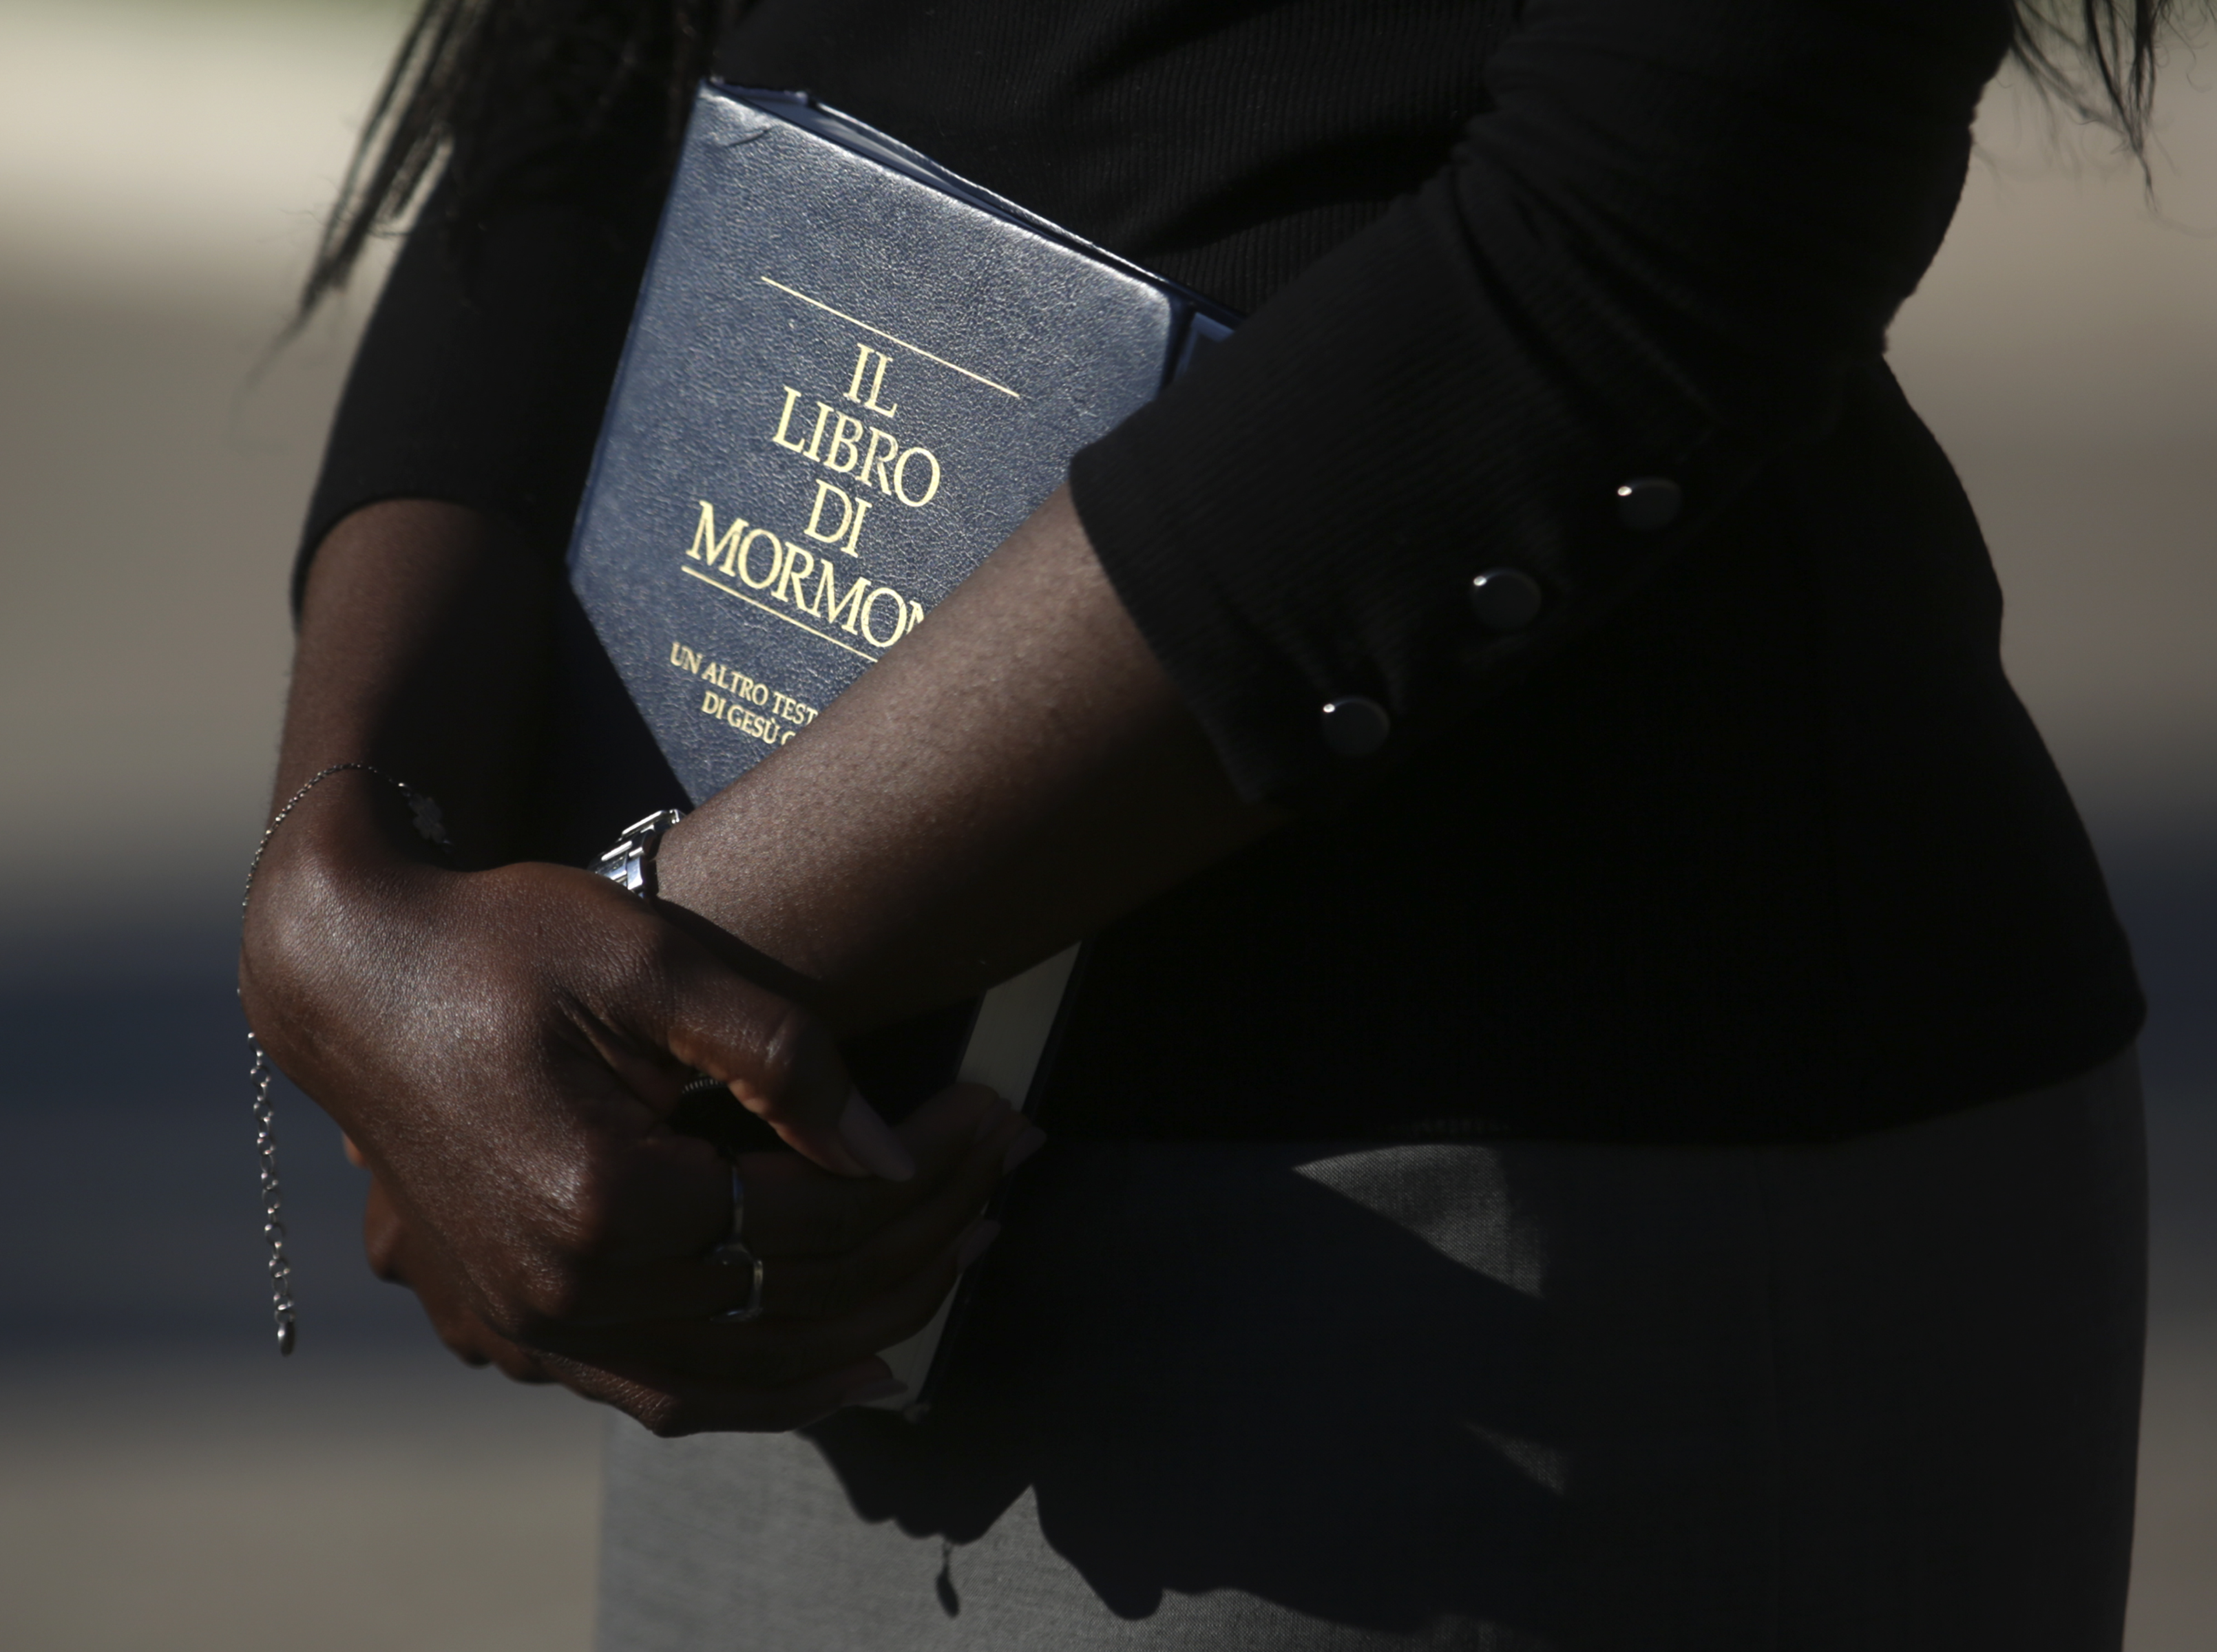 Sister Carolyne Dwomoh holds an Italian Book of Mormon while finding in Rome, Italy, on Saturday, Nov. 17, 2018.